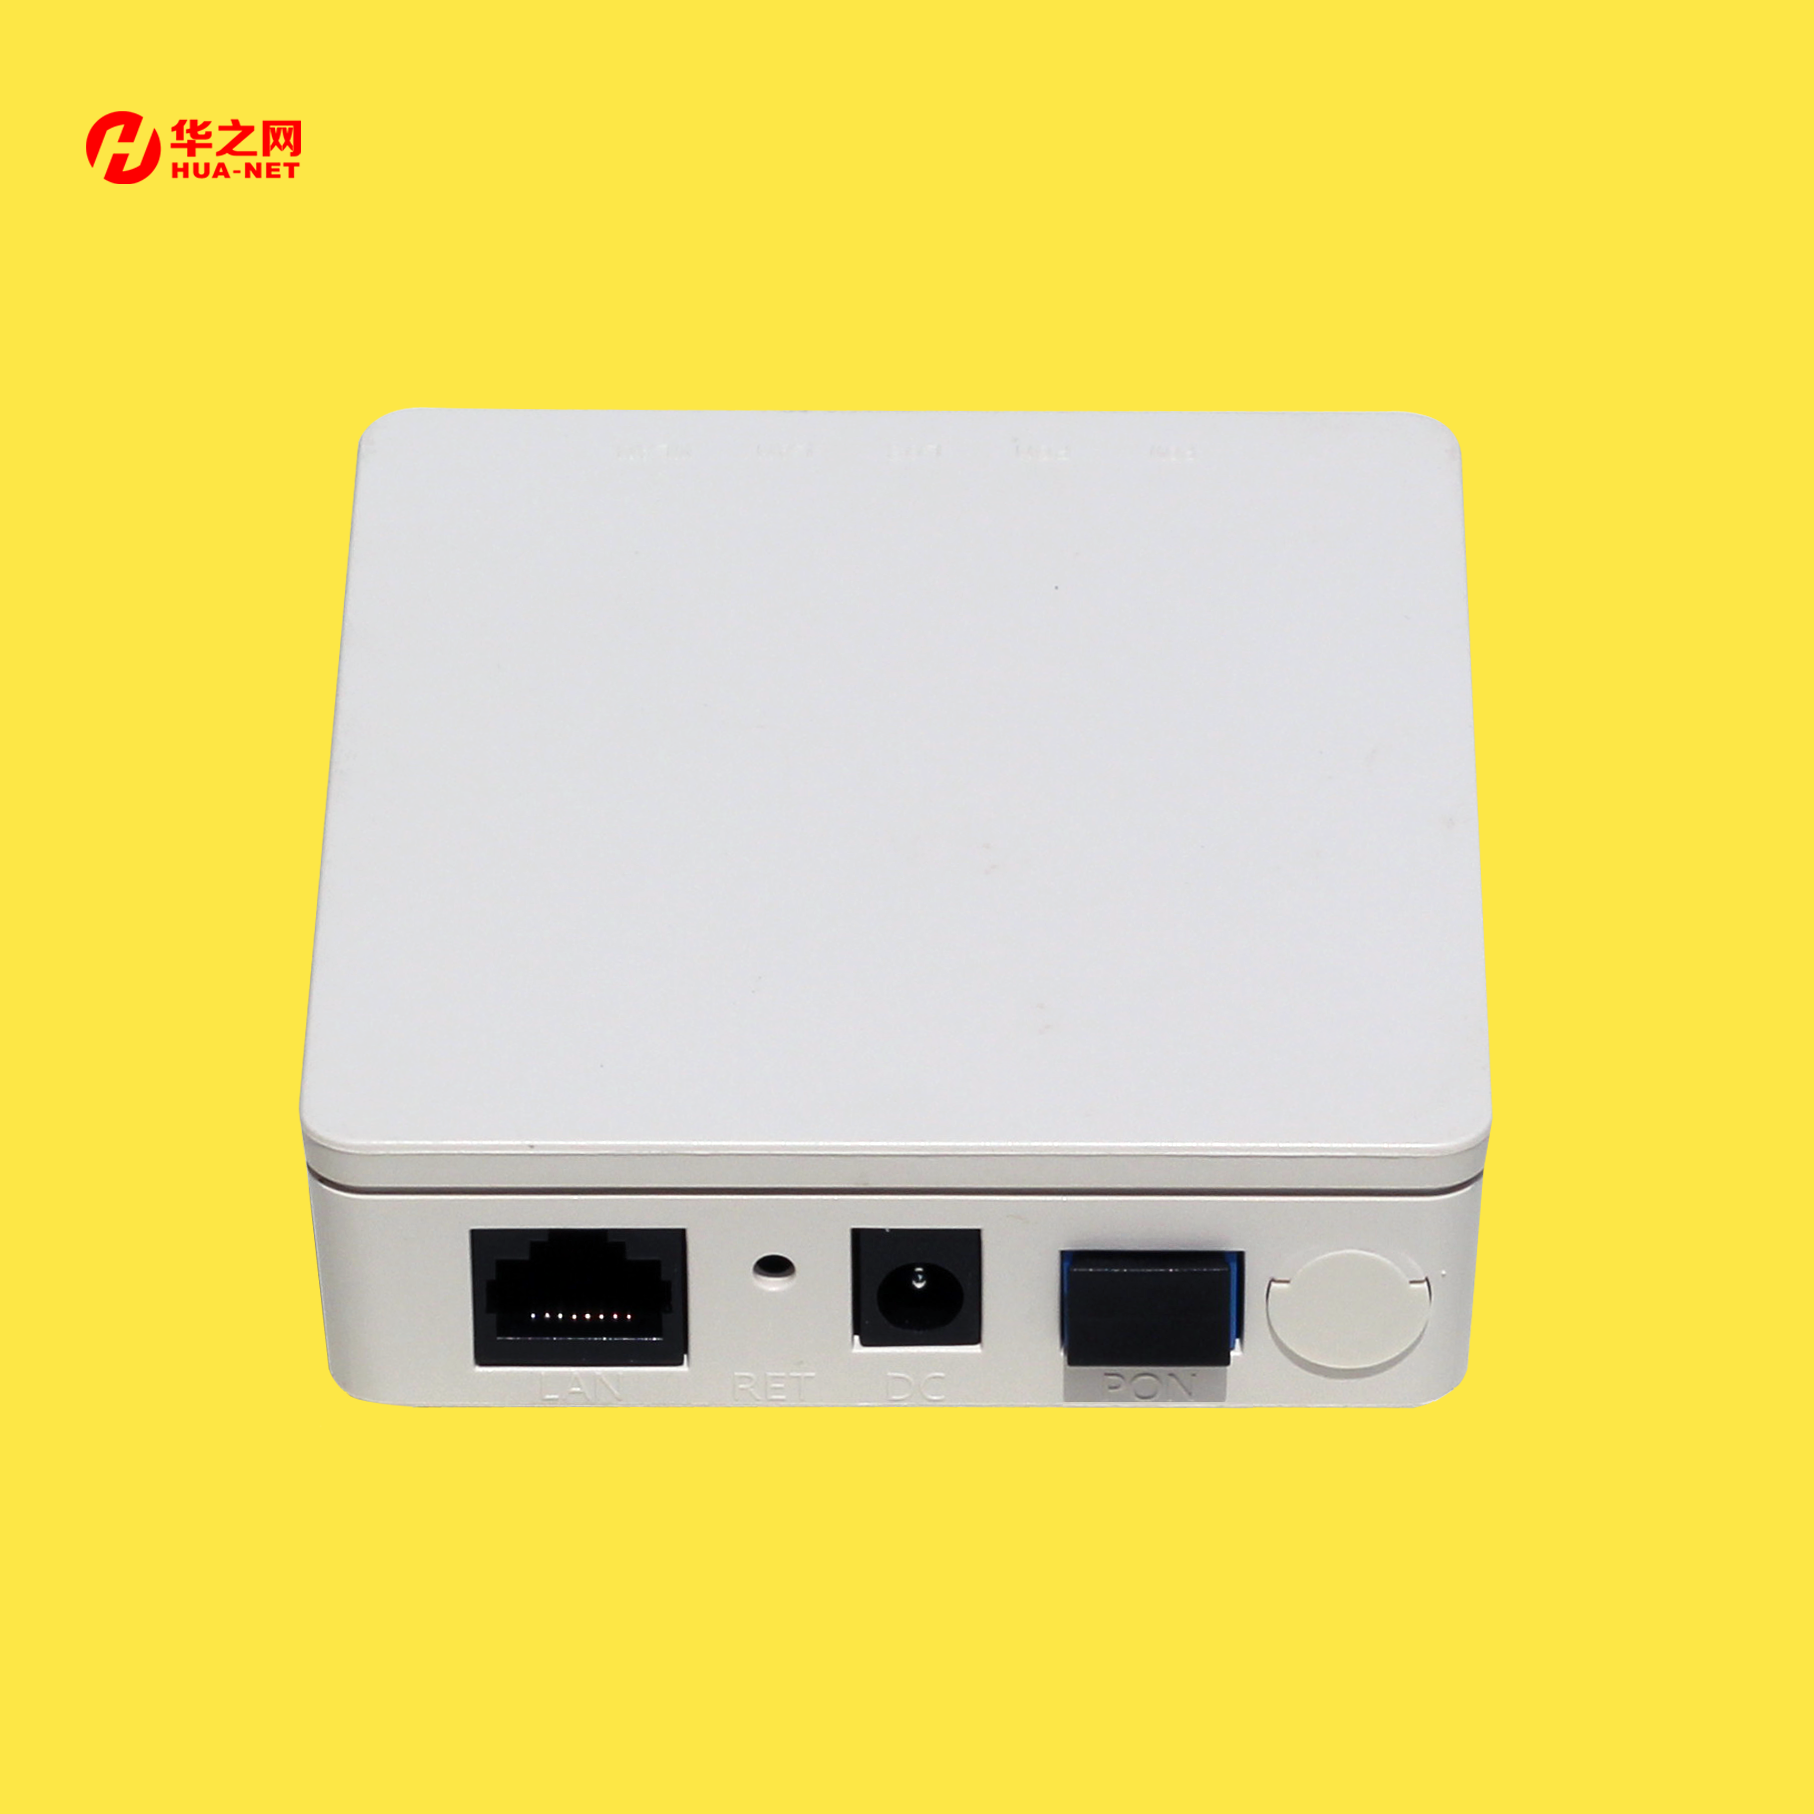 Compatible with Huawei ZTE Fiberhome Alcatel-Lucent OLT GPON ONT 1 GE GPON ONU Price India